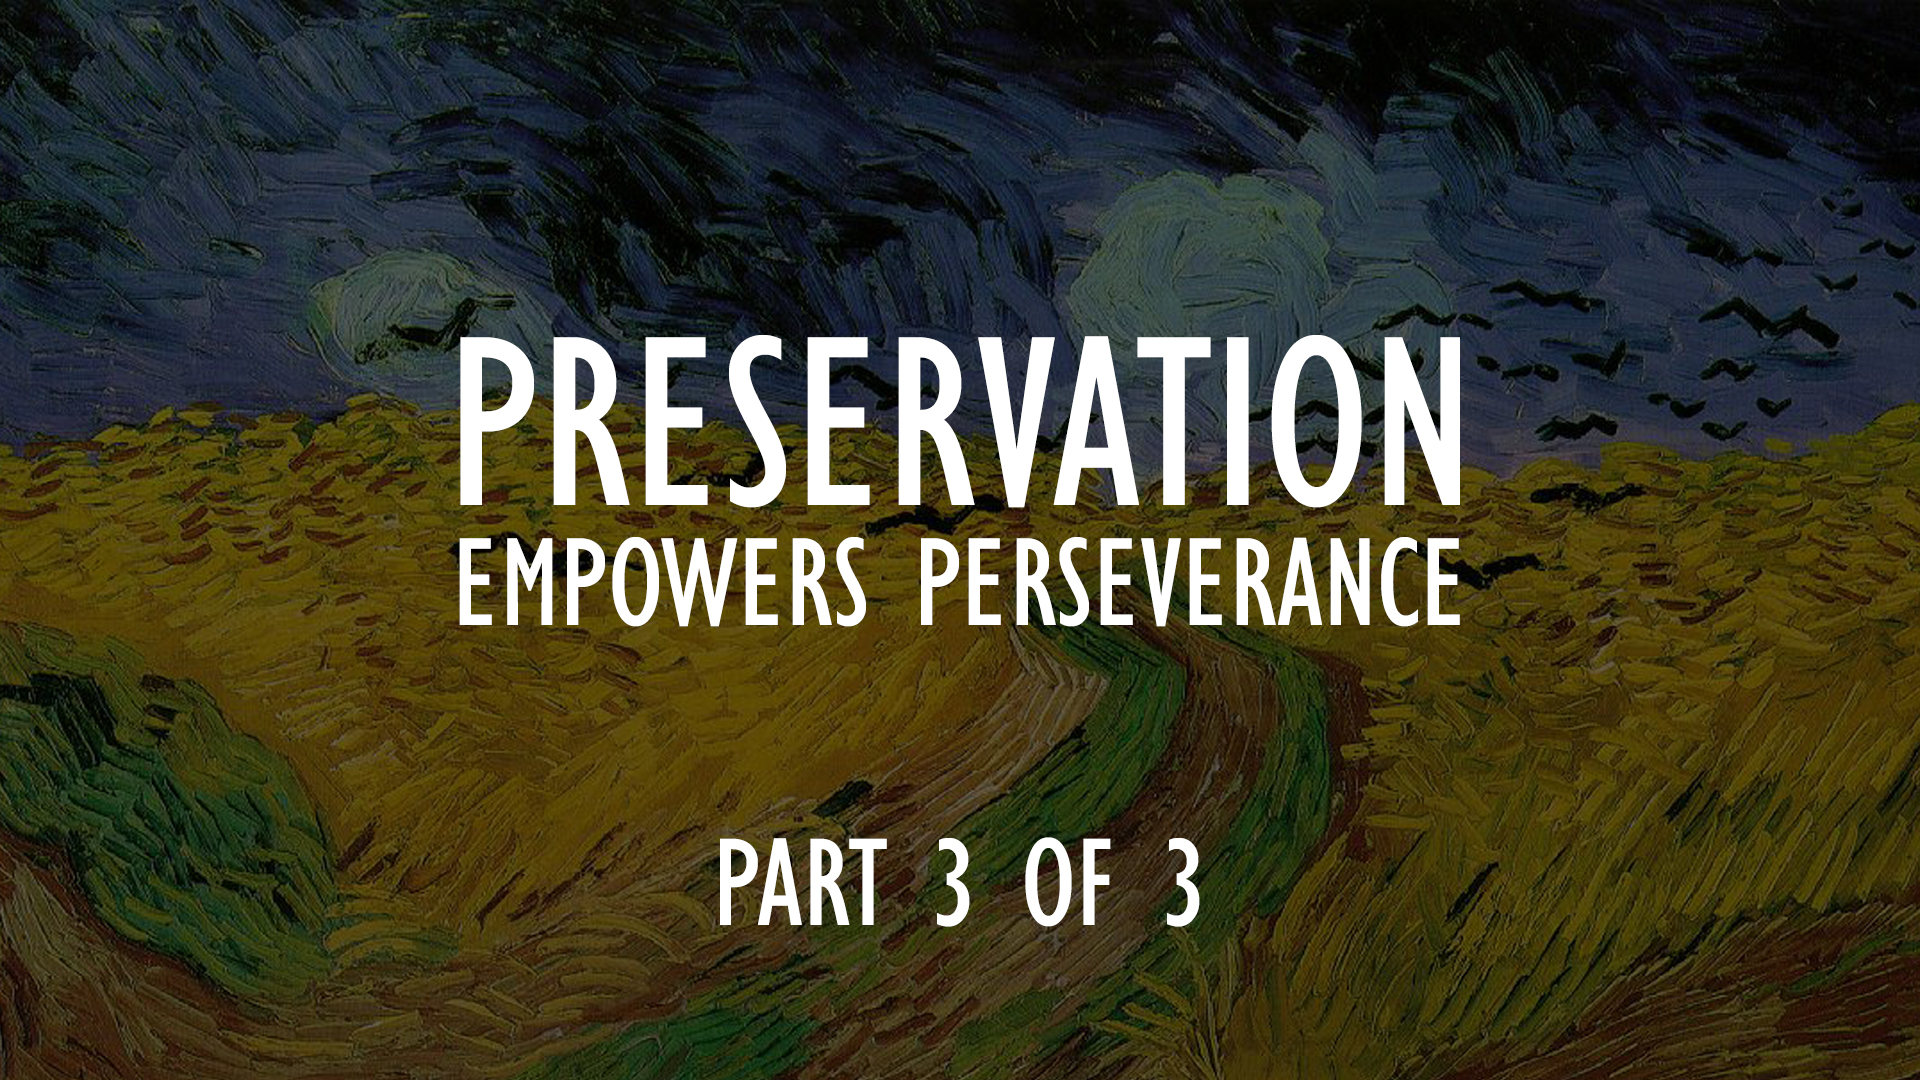 Gods-preservation-part-3